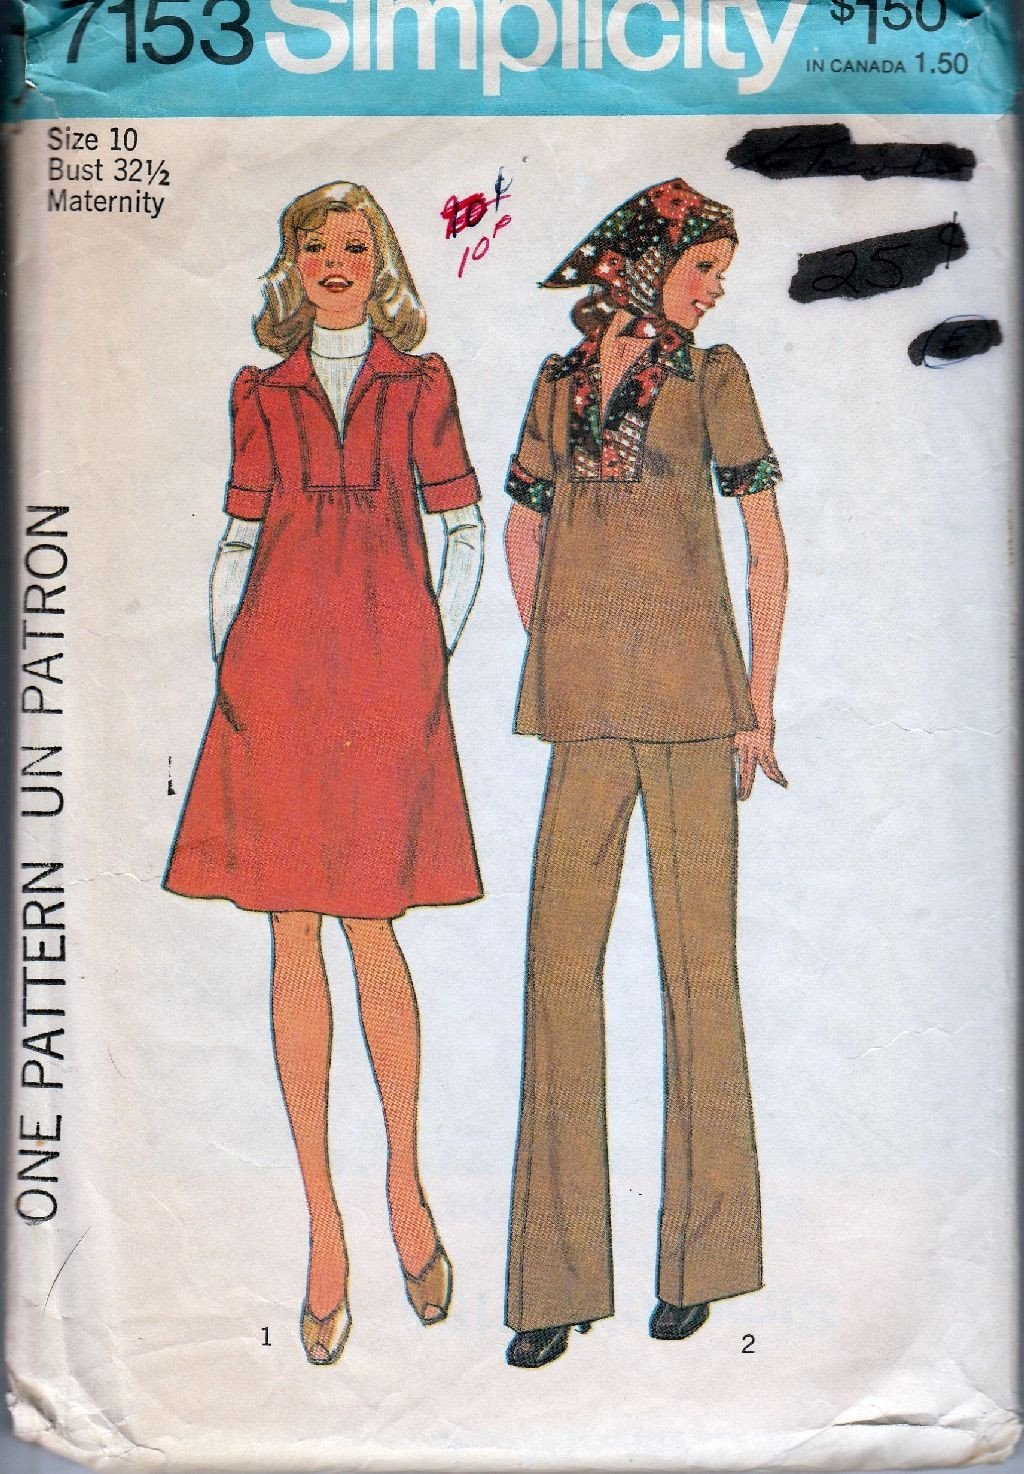 Simplicity 7153 Vintage 1970's Sewing Pattern Ladies Maternity Top Dress Pants Scarf - VintageStitching - Vintage Sewing Patterns